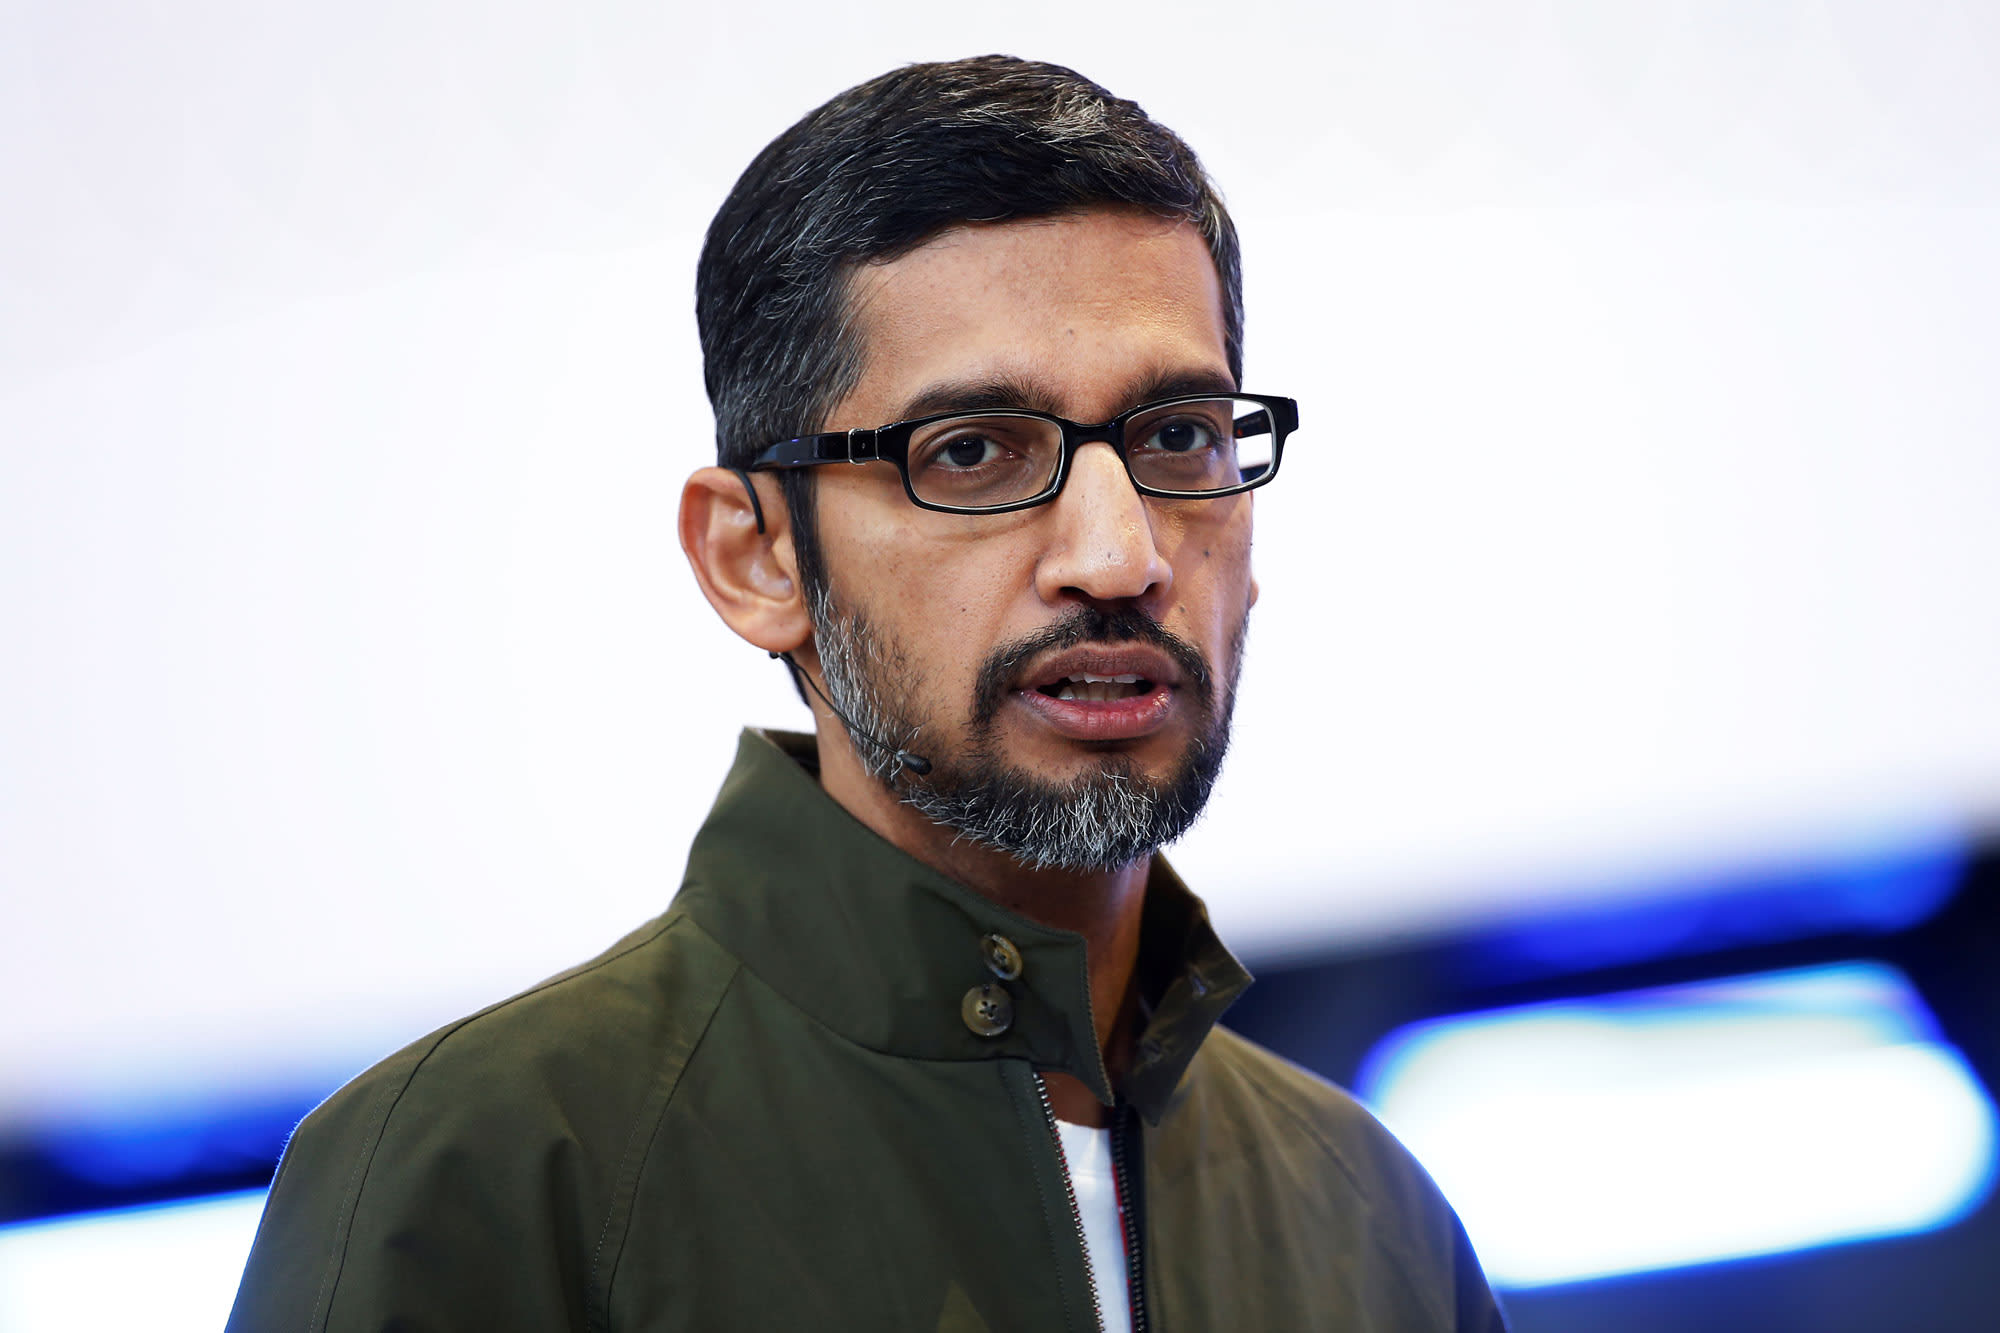 Google CEO Sundar Pichai speaks on stage during the annual Google I/O developers conference in Mountain View, California, May 8, 2018.